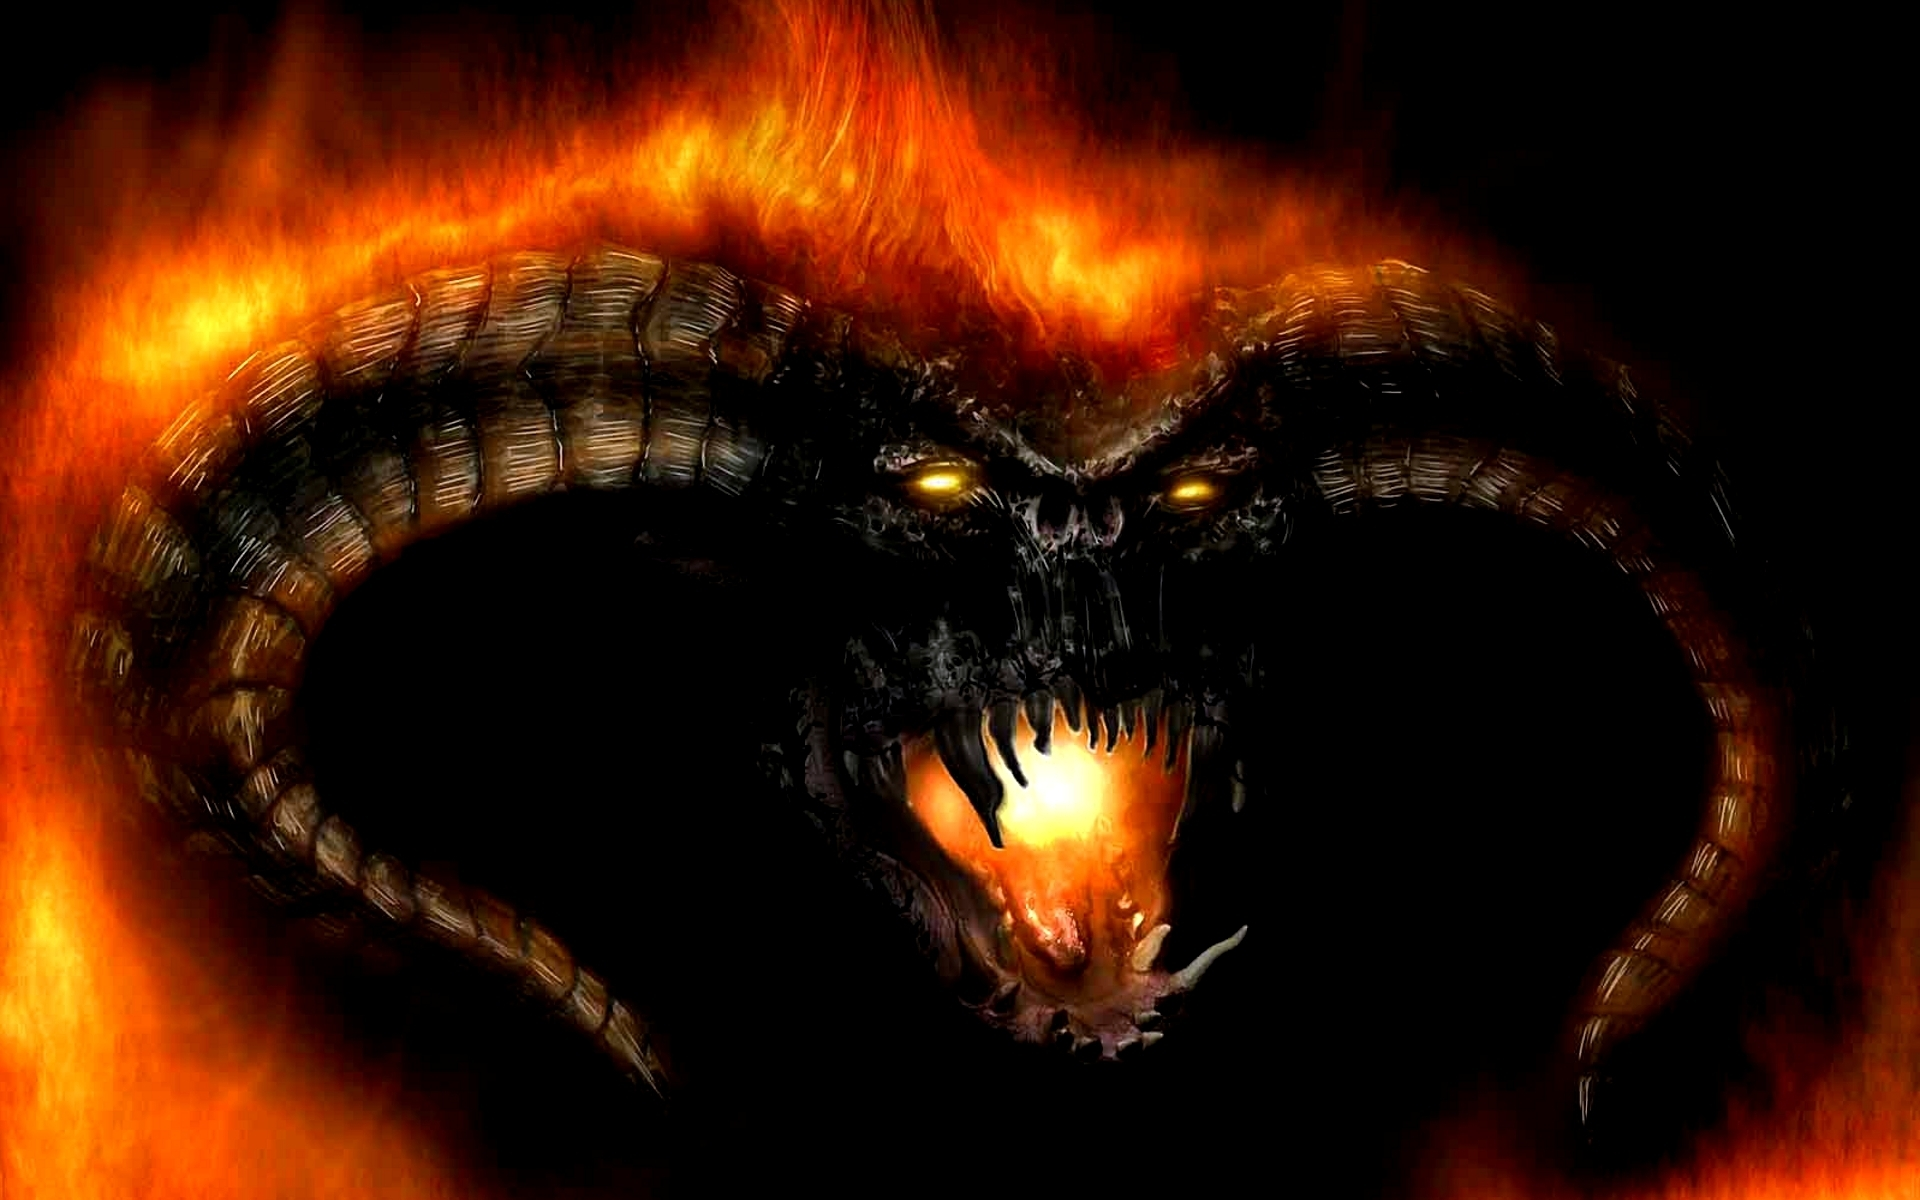 3079488-balrog-lord-of-the-rings-4801000-1920-1200.jpg